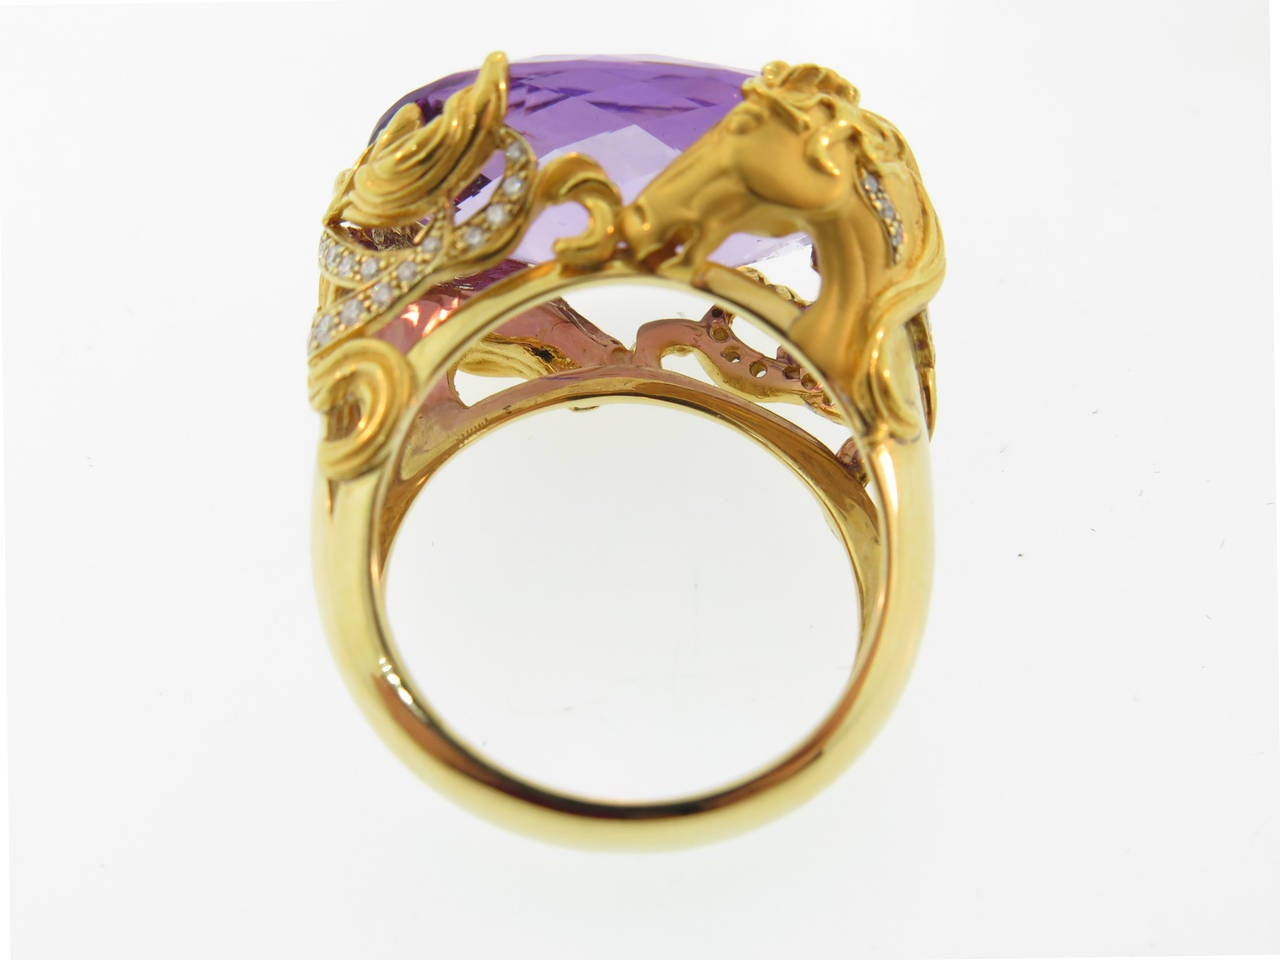 Carrera & Carrera Amethyst Diamond Gold Equestrian Ring In As new Condition For Sale In Greenwich, CT